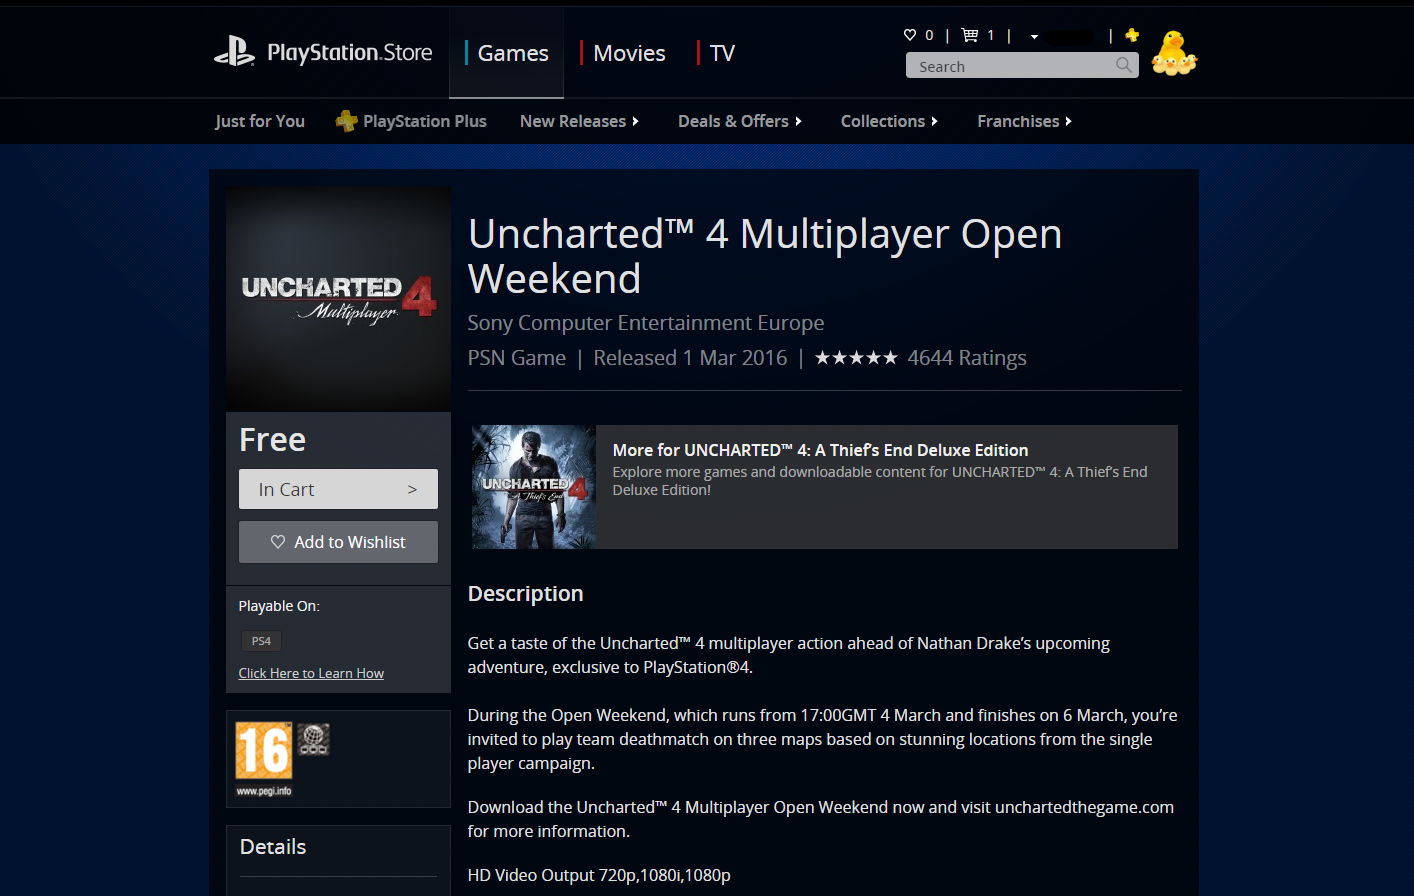 Uncharted 4 May Be Getting UK Exclusive Multiplayer Beta uncharted 4 gets open beta this weekend 145676274461